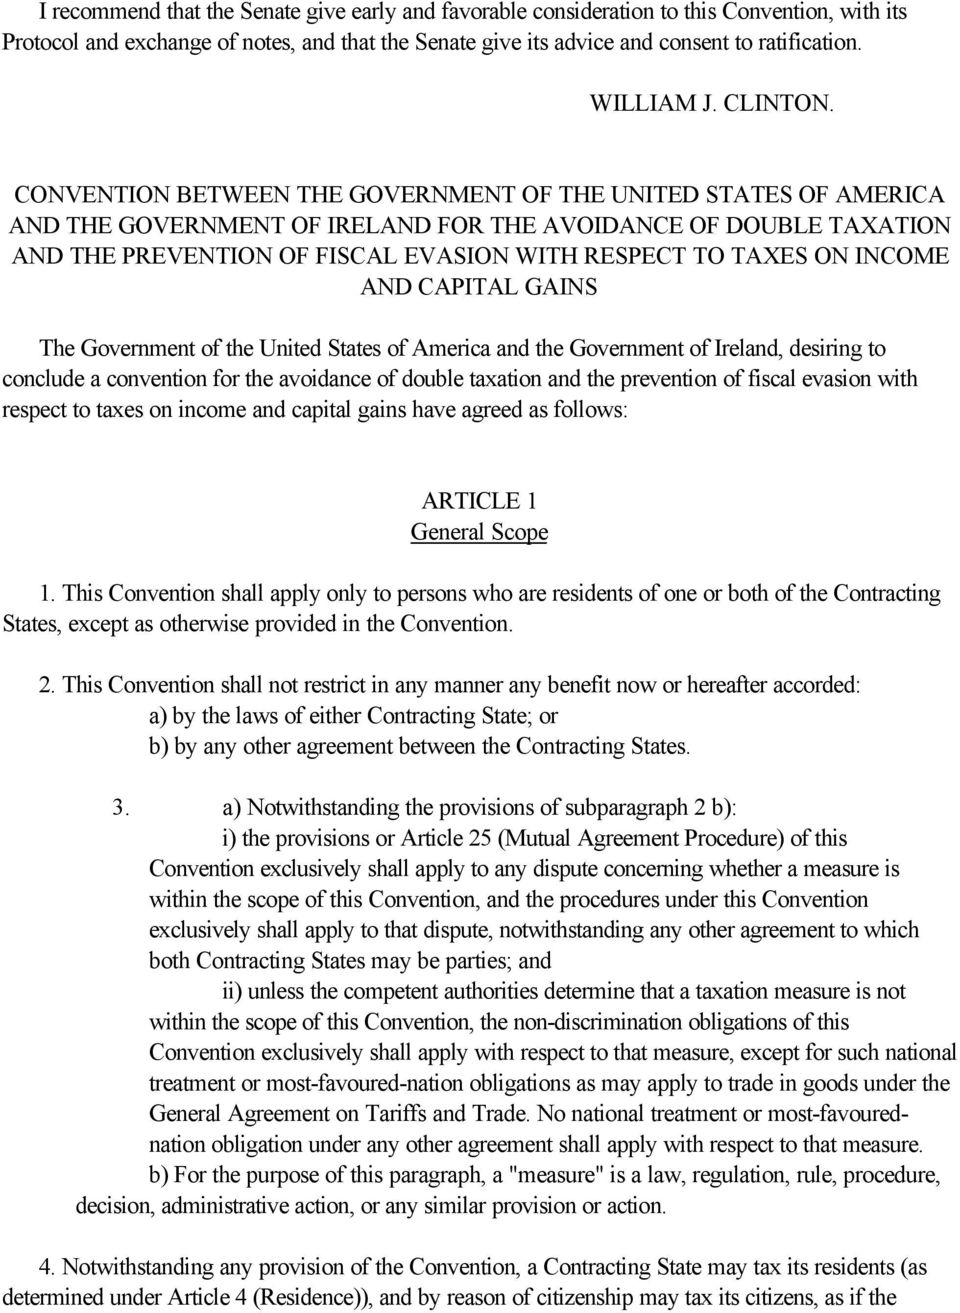 CONVENTION BETWEEN THE GOVERNMENT OF THE UNITED STATES OF AMERICA AND THE GOVERNMENT OF IRELAND FOR THE AVOIDANCE OF DOUBLE TAXATION AND THE PREVENTION OF FISCAL EVASION WITH RESPECT TO TAXES ON